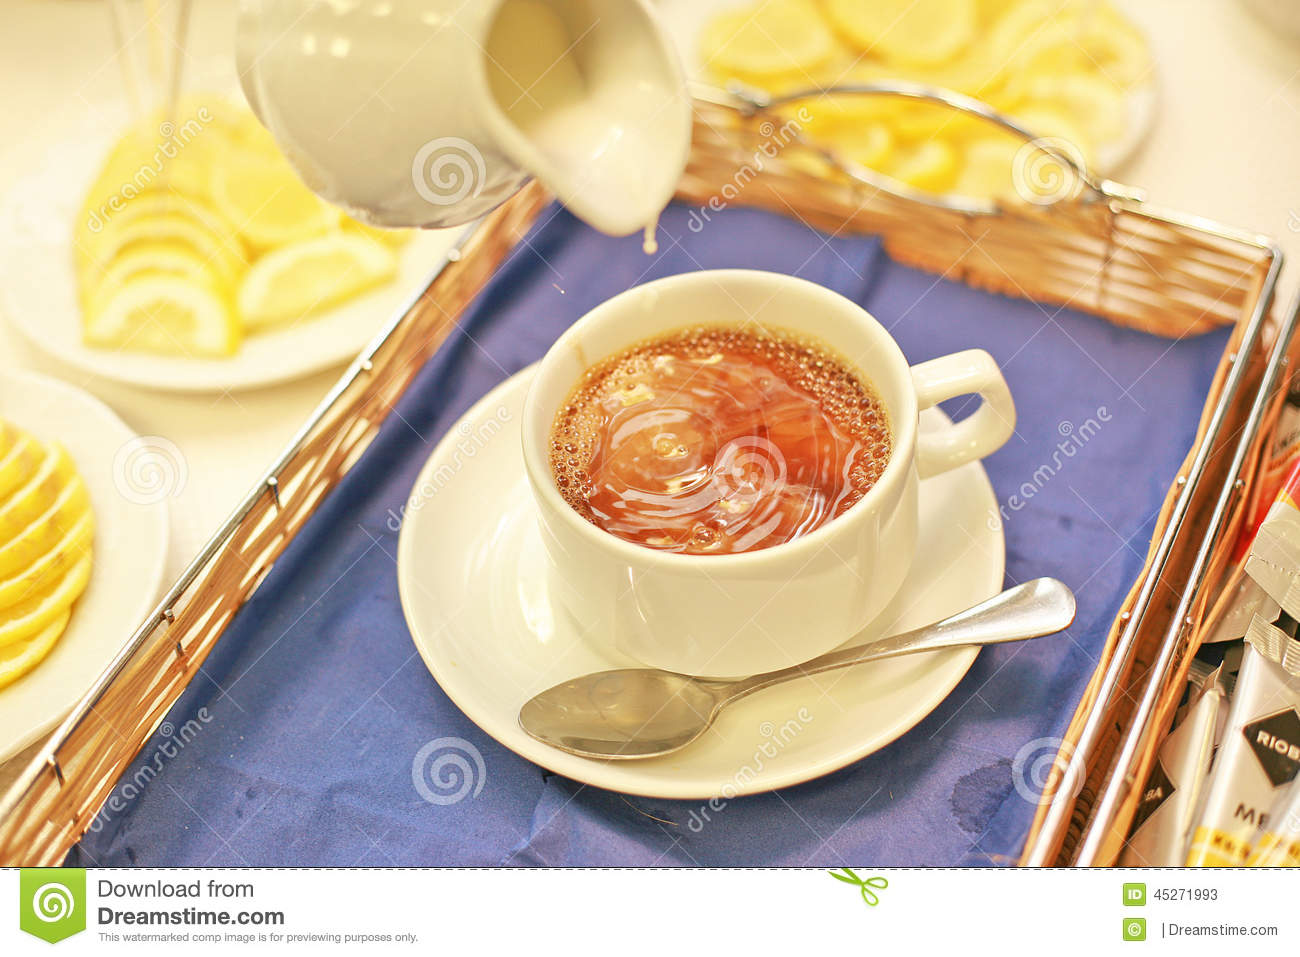 Download A Snow White Cup Of Tea With Milk Stock Image - Image of lemon, pours: 45271993